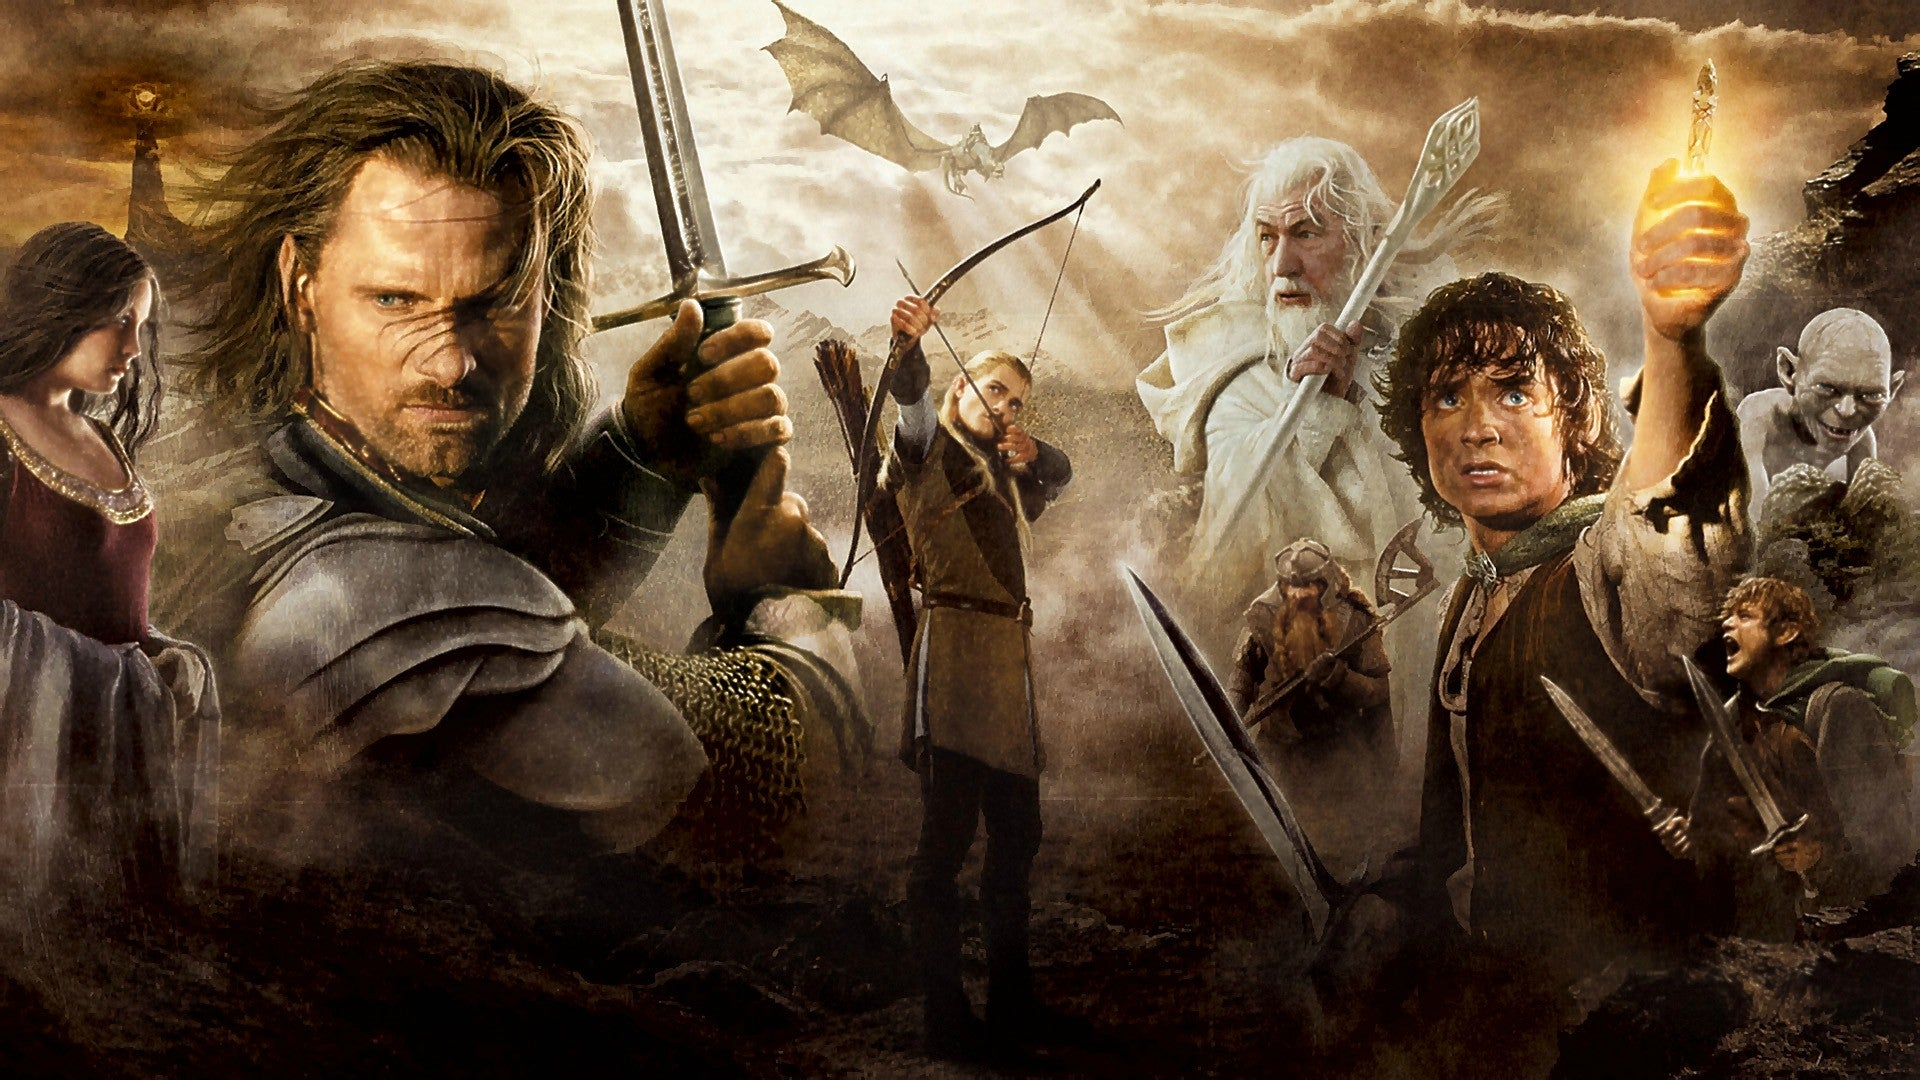 One Of 2015's Most Popular Mods Is From A 2006 Lord of the Rings Game